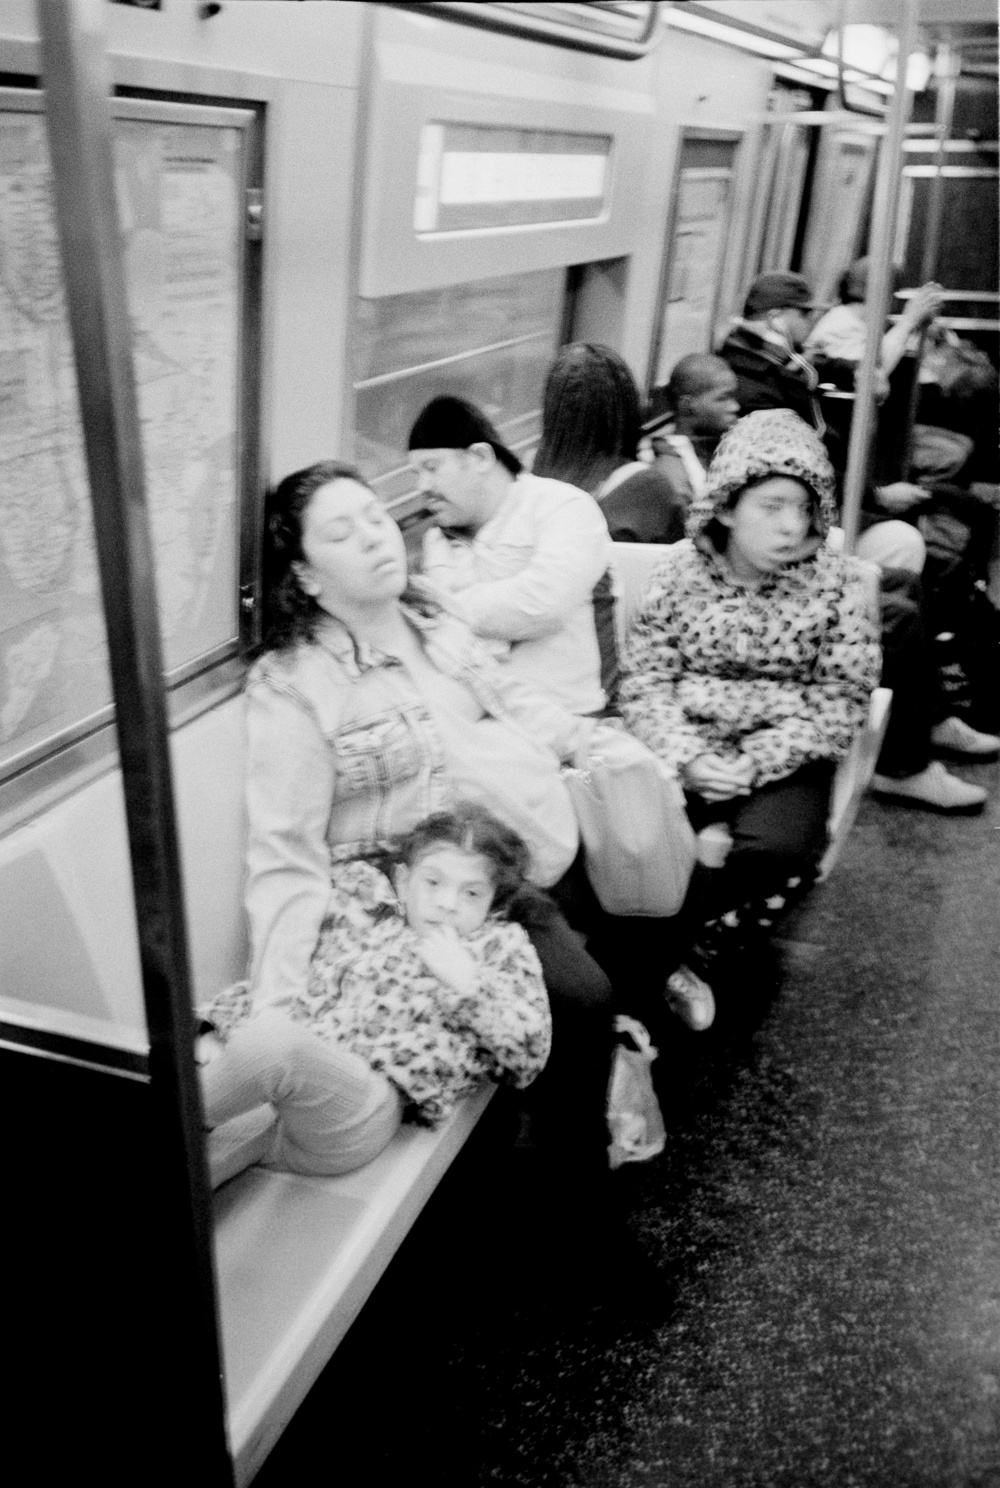 CheetahGirlsMomAsleepSubway copy.jpg